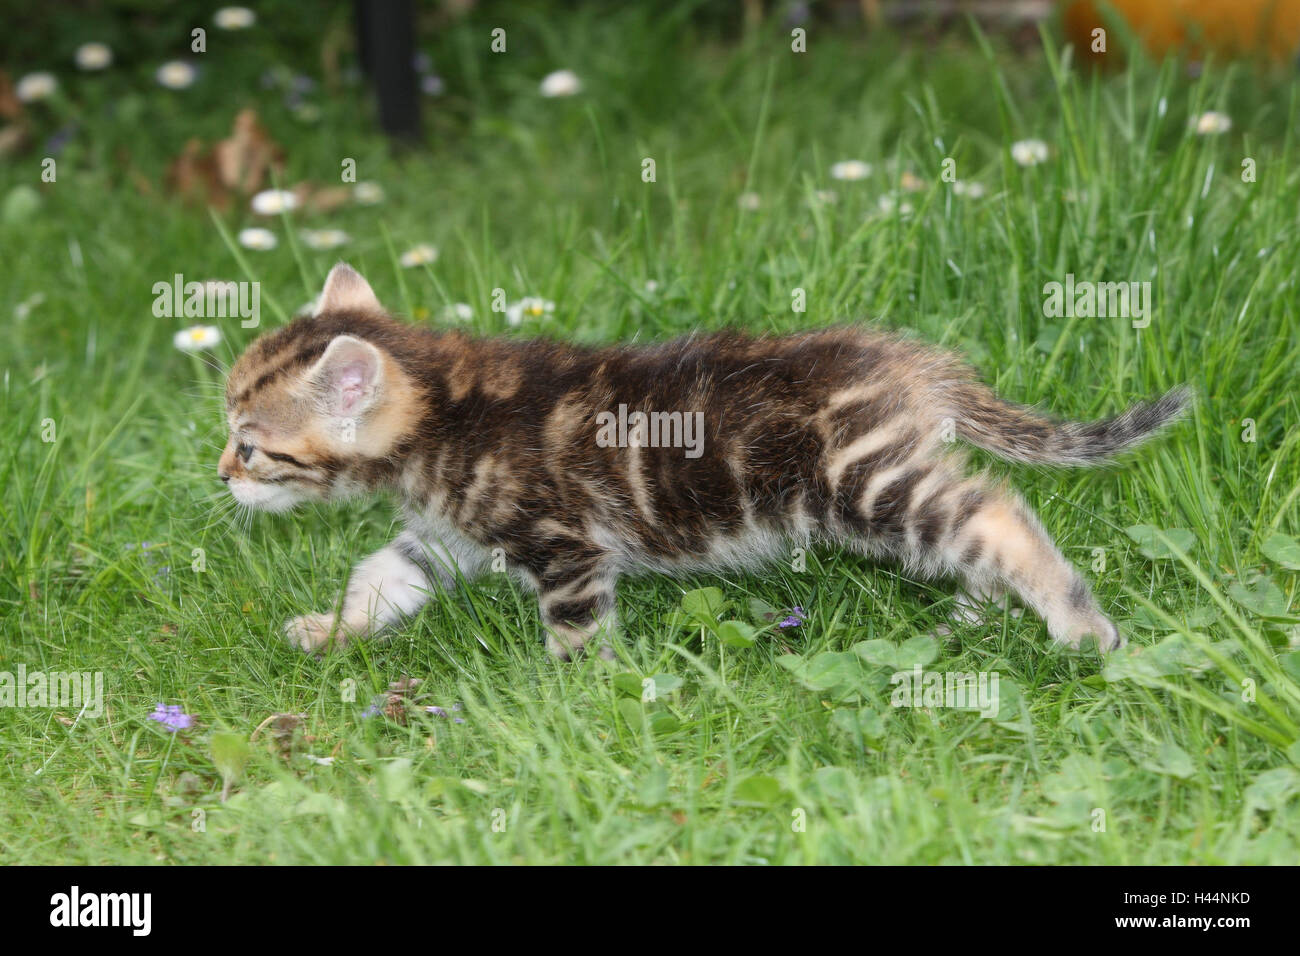 Cat, young, run, side view, meadow, garden, animals, mammals, pets, small cats, Felidae, domesticates, house cat, - Stock Image